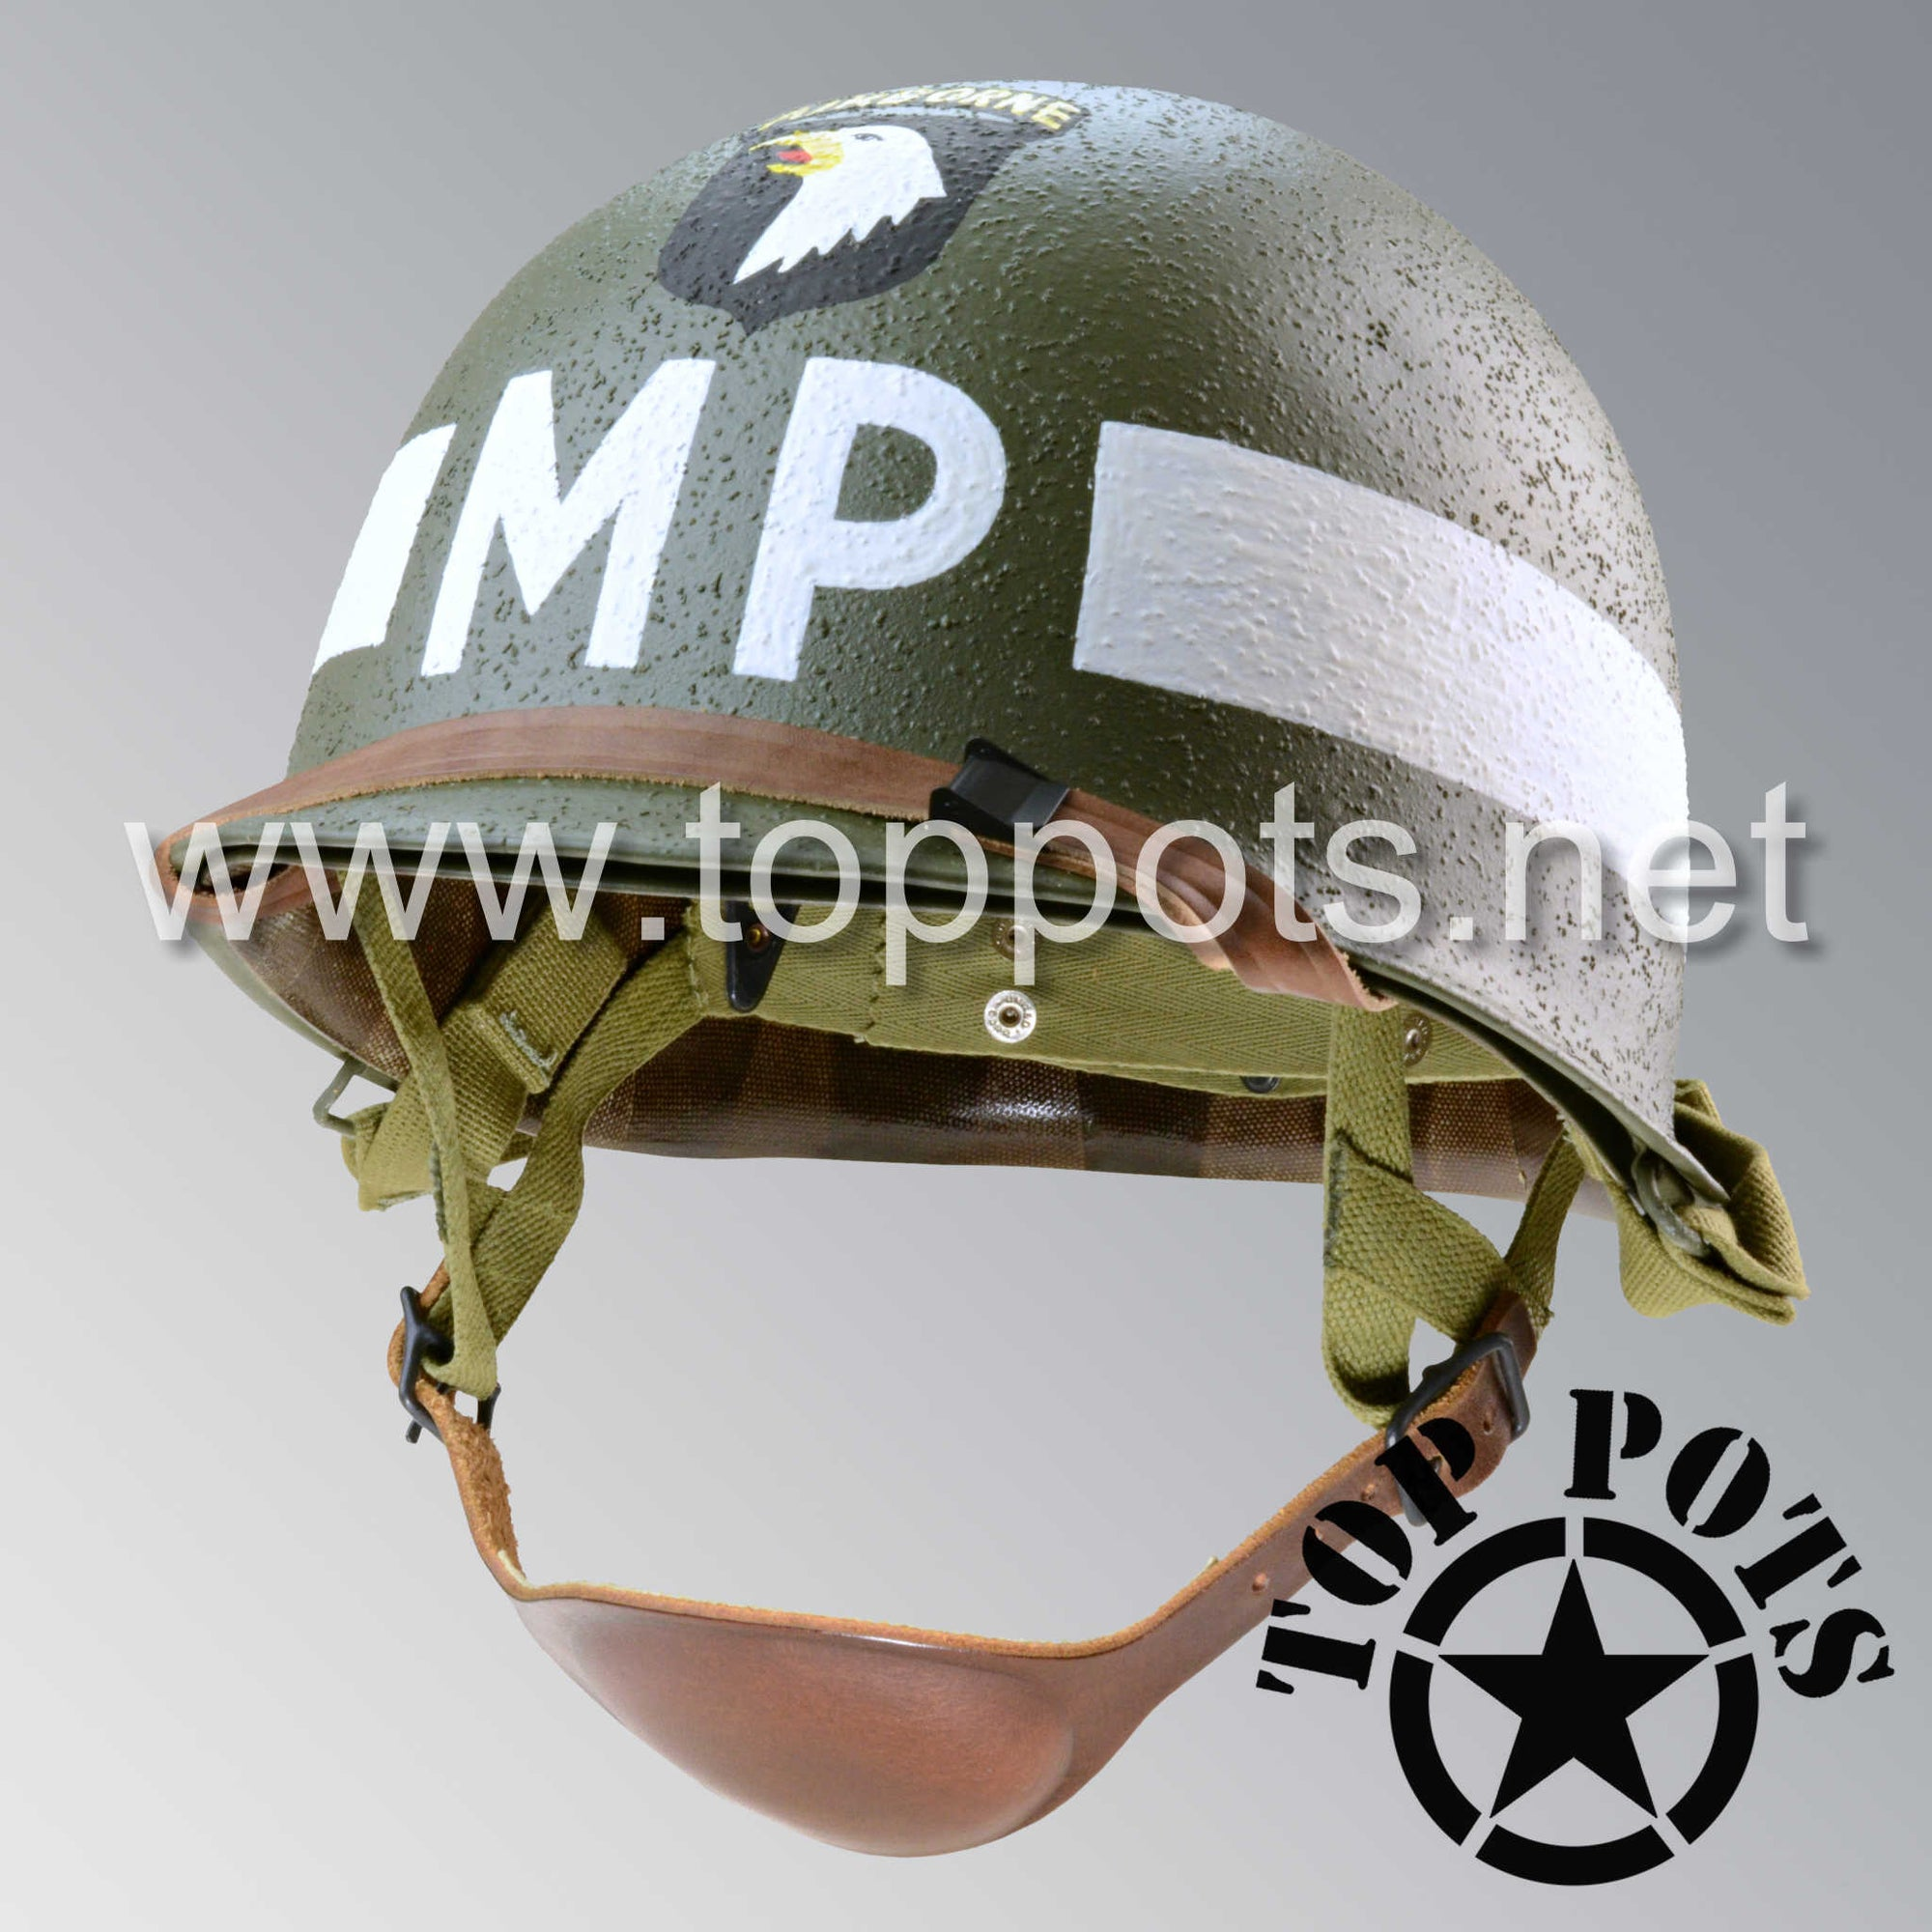 Image 1 of WWII US Army Restored Original M1C Paratrooper Airborne Helmet Swivel Bale Shell and Liner with 101st Airborne MP Military Police Emblem